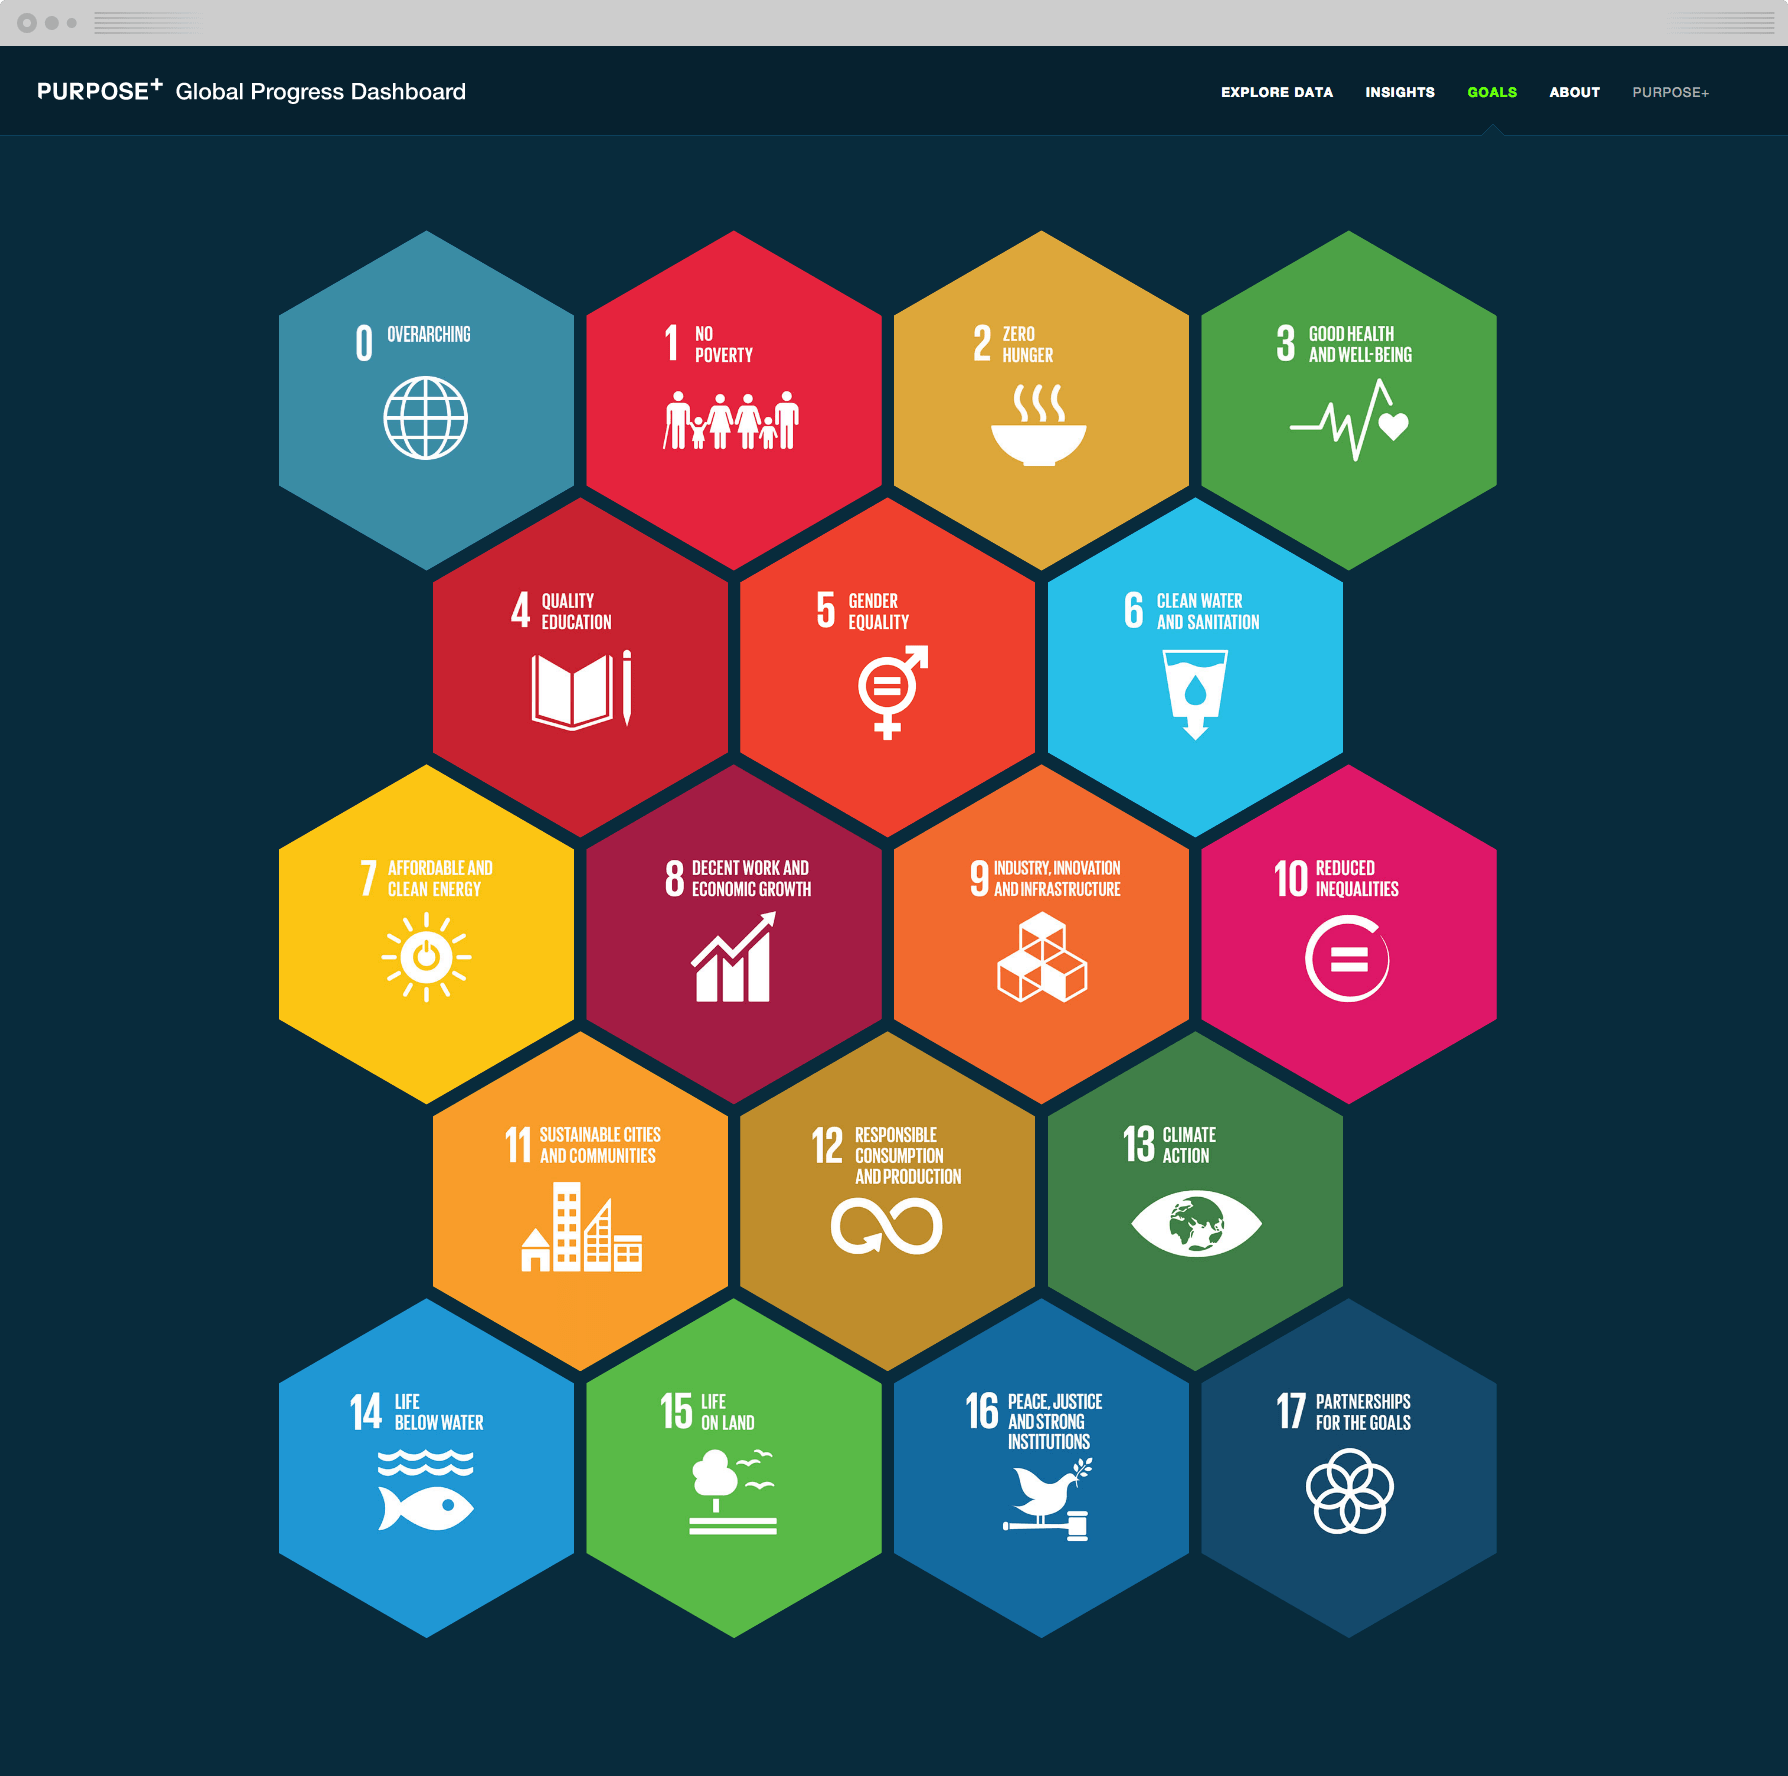 The website contains over 110 datasets about 18 different topics